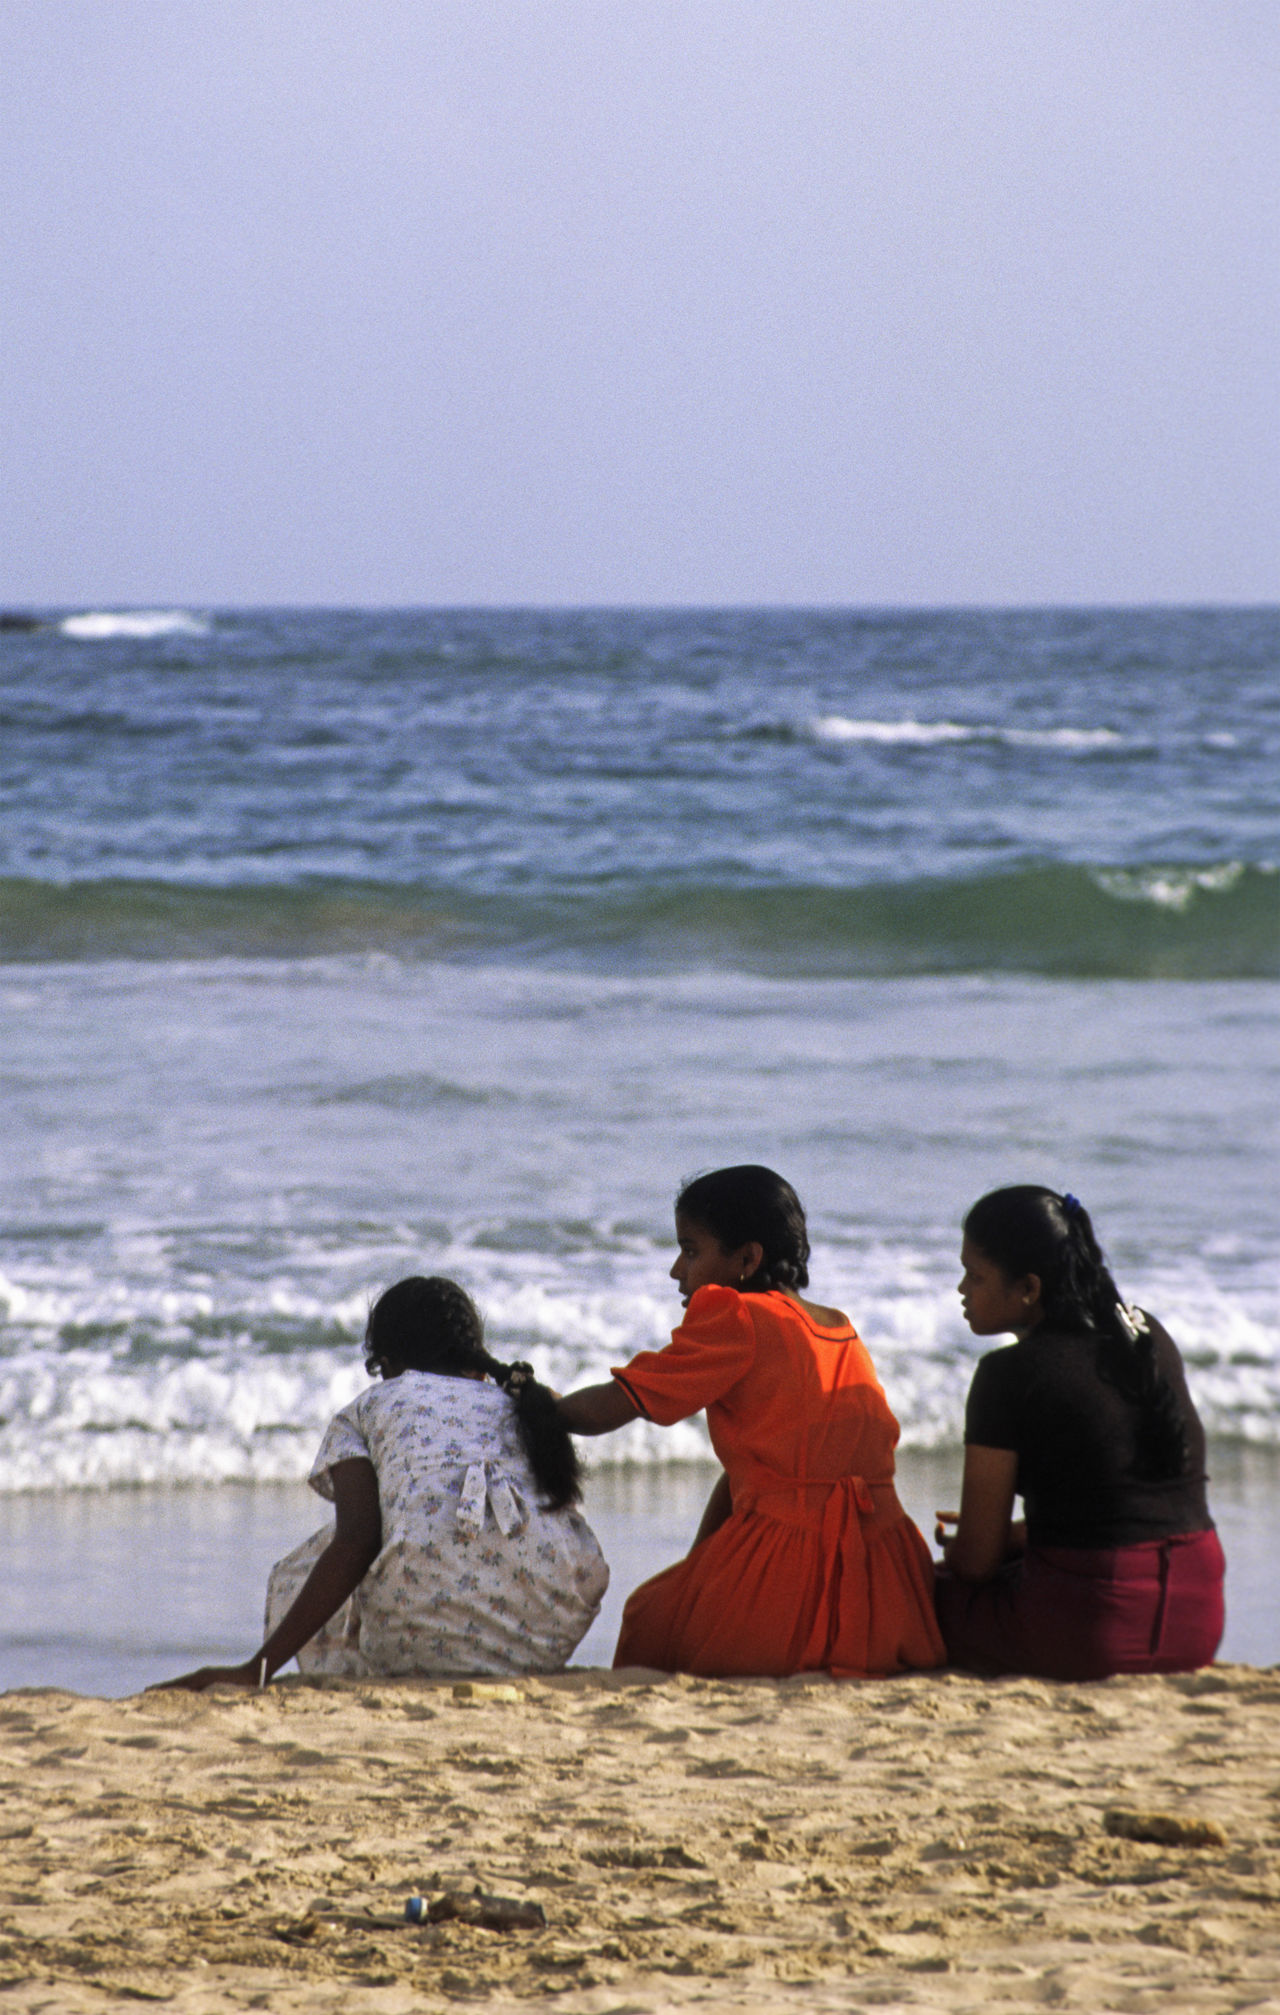 Three young girls sit on a Sri Lankan beach Beach Day Friends Horizon Over Water Idyllic Leisure Activity Lifestyles Ocean Outdoors Relaxation Remote Scenics Sea Seascape Shore Sitting Sky Three Girls Togetherness Tourism Tranquil Scene Vacations Water Wave